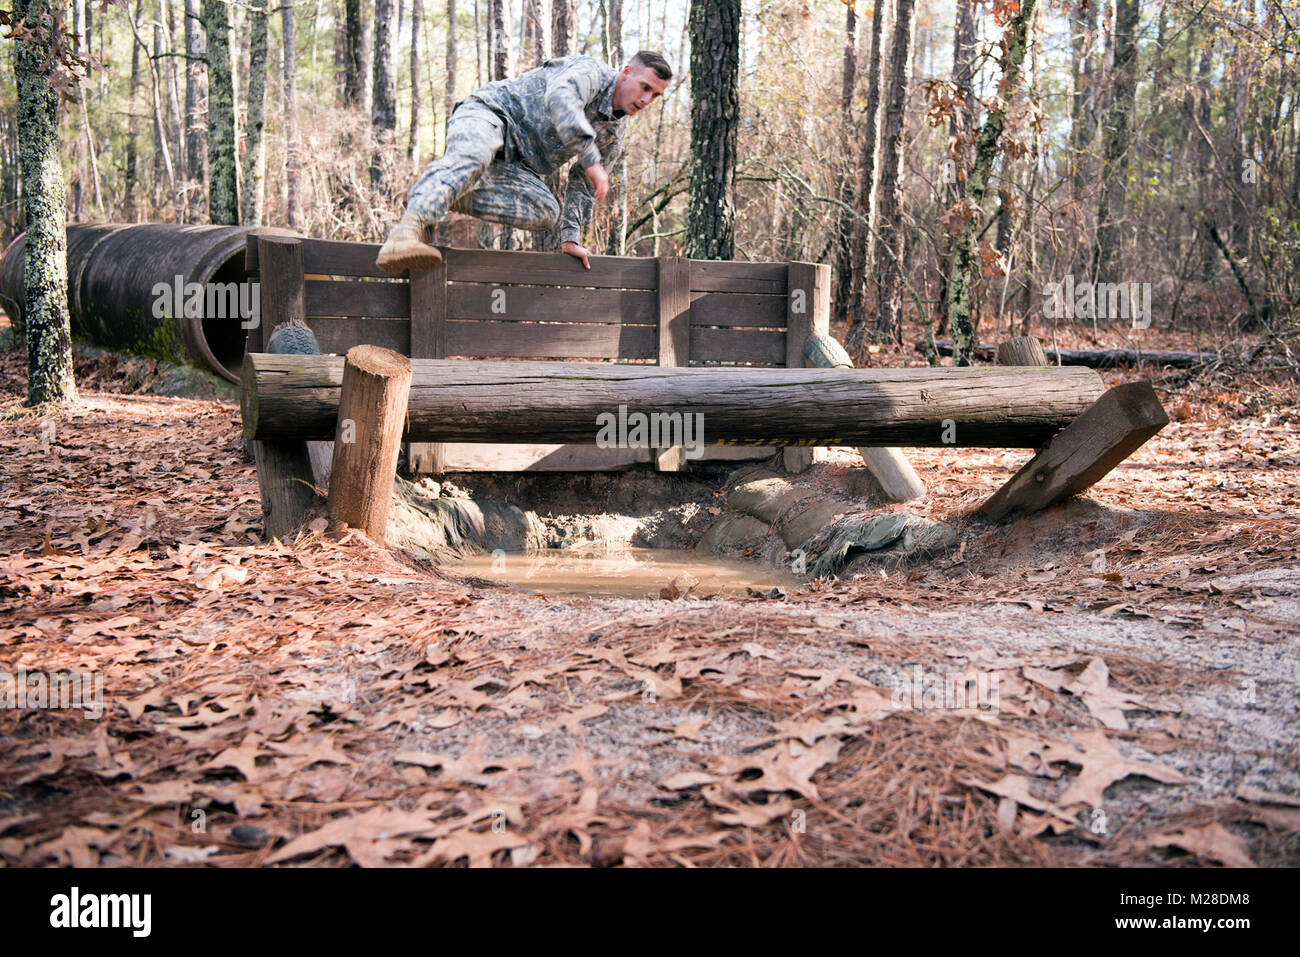 Sgt. Jake Chupp, bridge crew member, 125th Multi Role Bridge Company, vaults an obstacle during the South Carolina Stock Photo